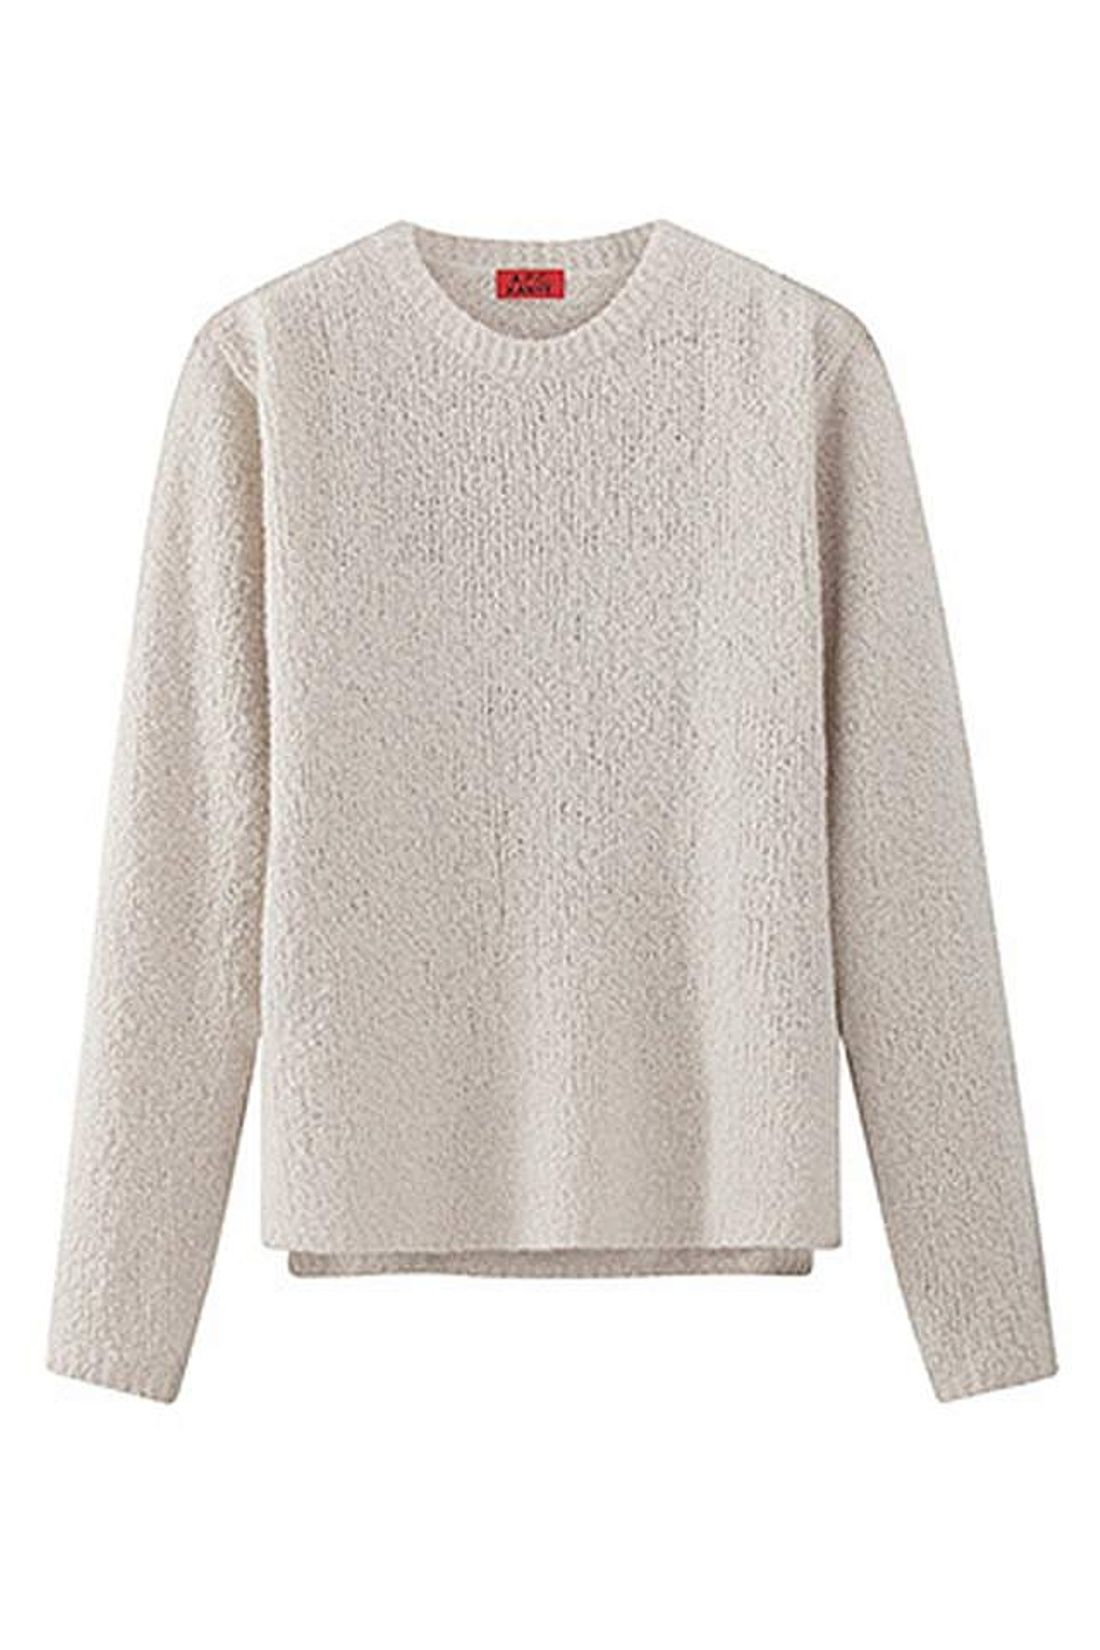 finest selection a4860 2d086 A.P.C. X Kanye West Airport Sweater Size S 450 - Grailed